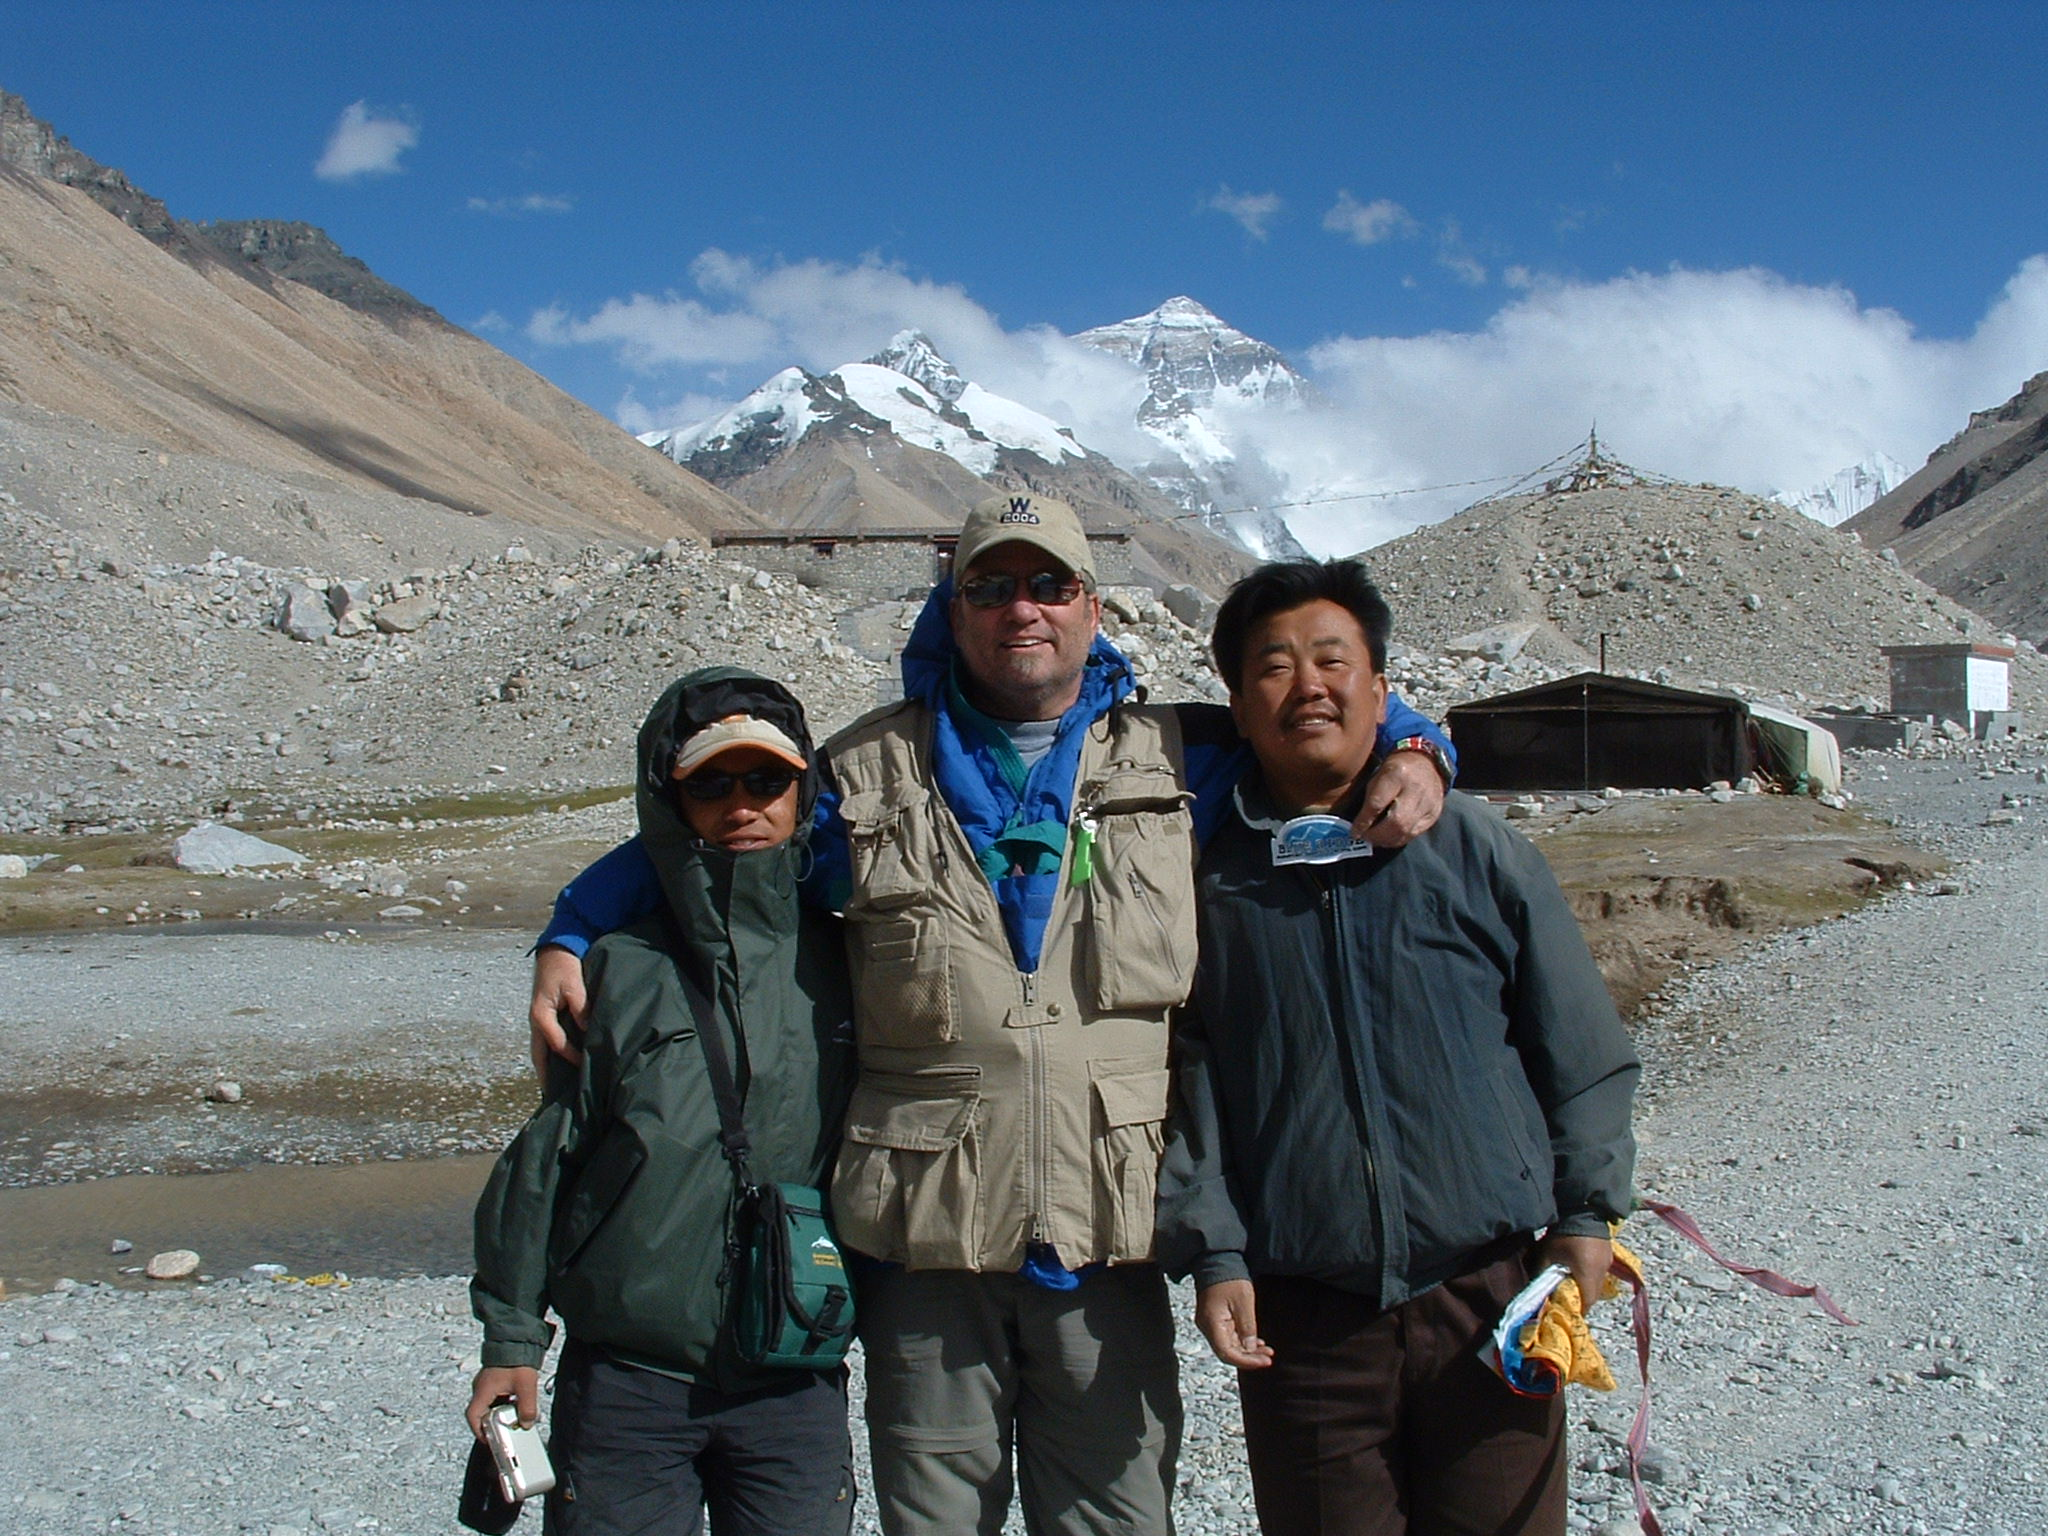 Pubu and Chen - with Everest in the background